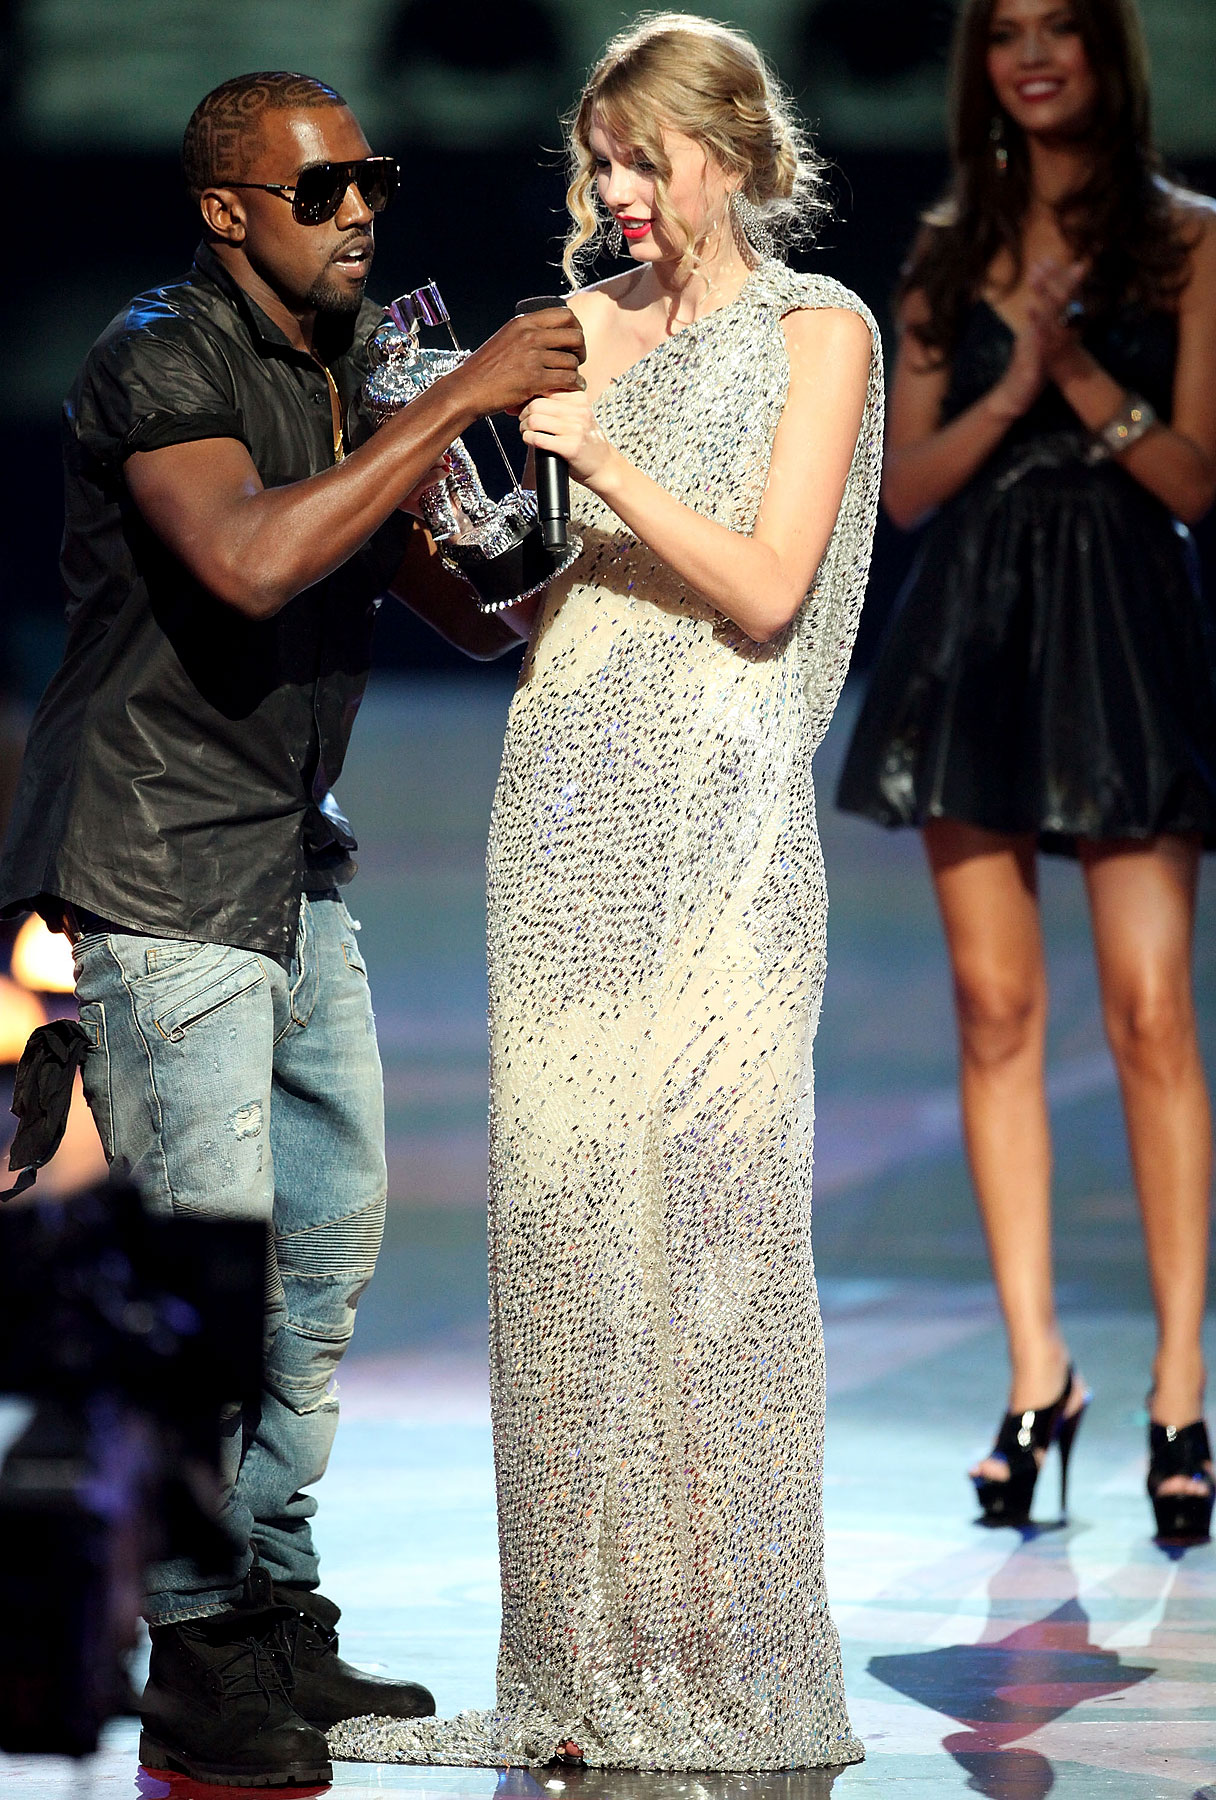 Kanye West Apologizes For Crashing Taylor Swift's VMA Speech-photo